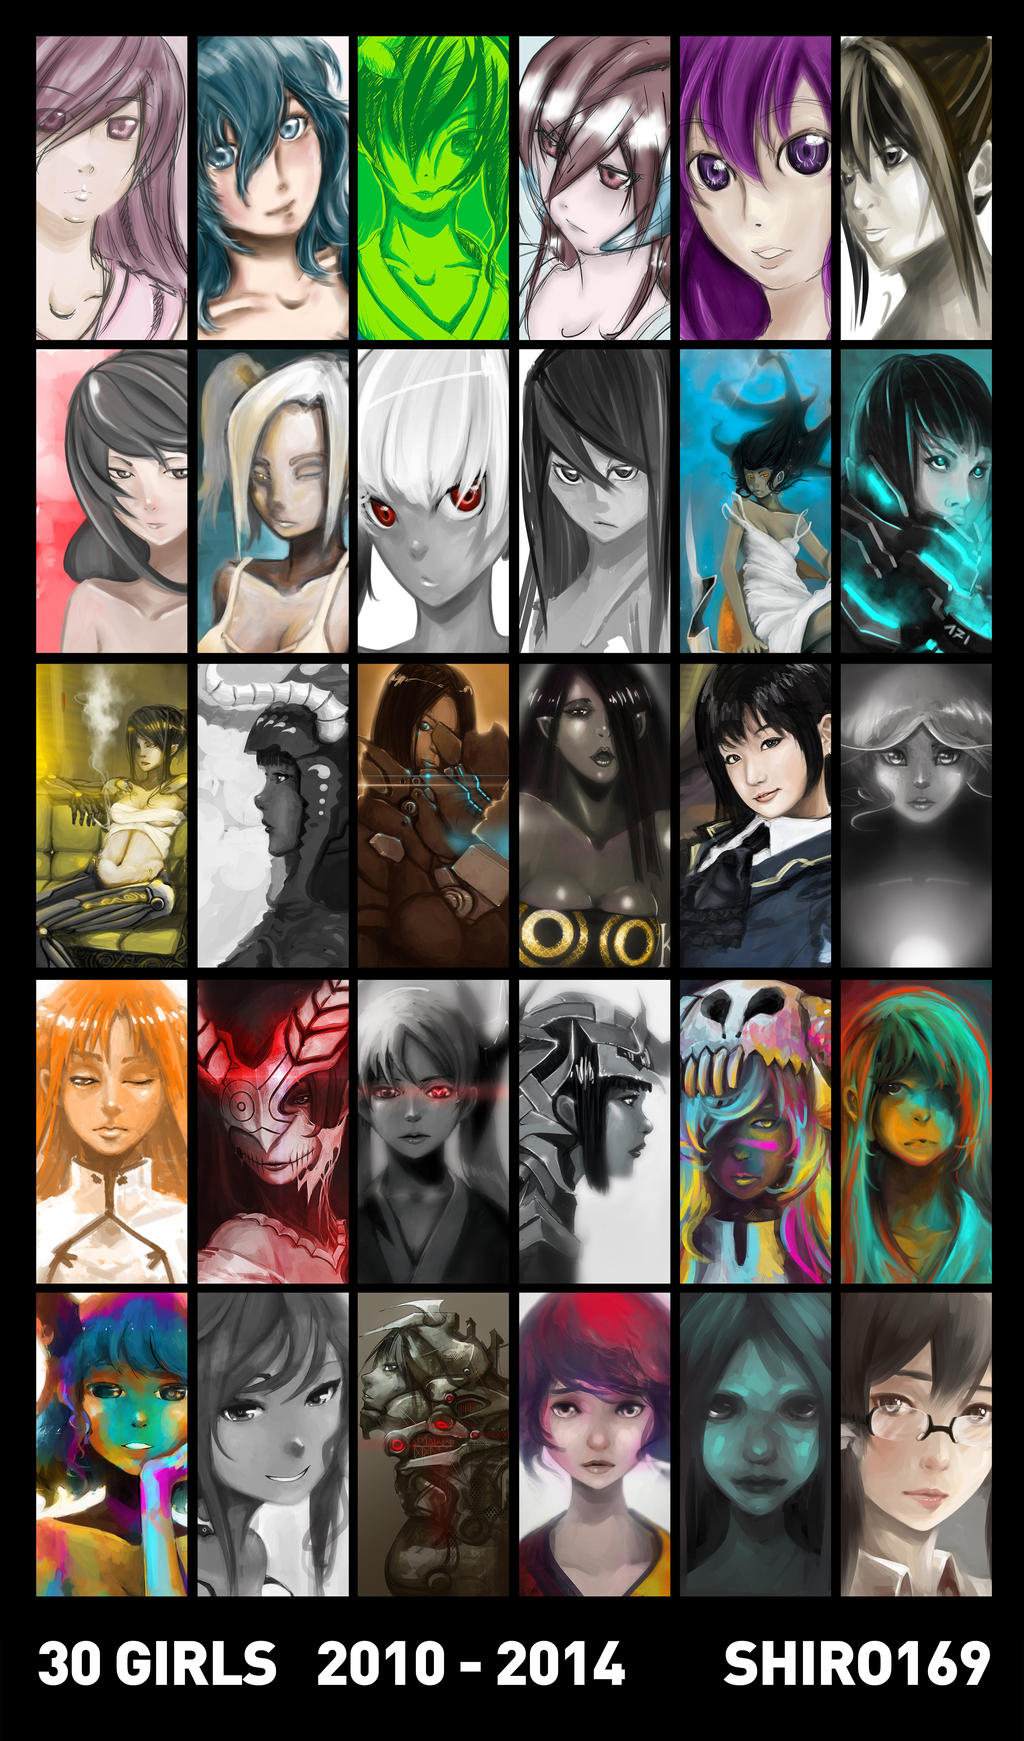 30 GIRLS retrospective 2010-2014 by Shiro169